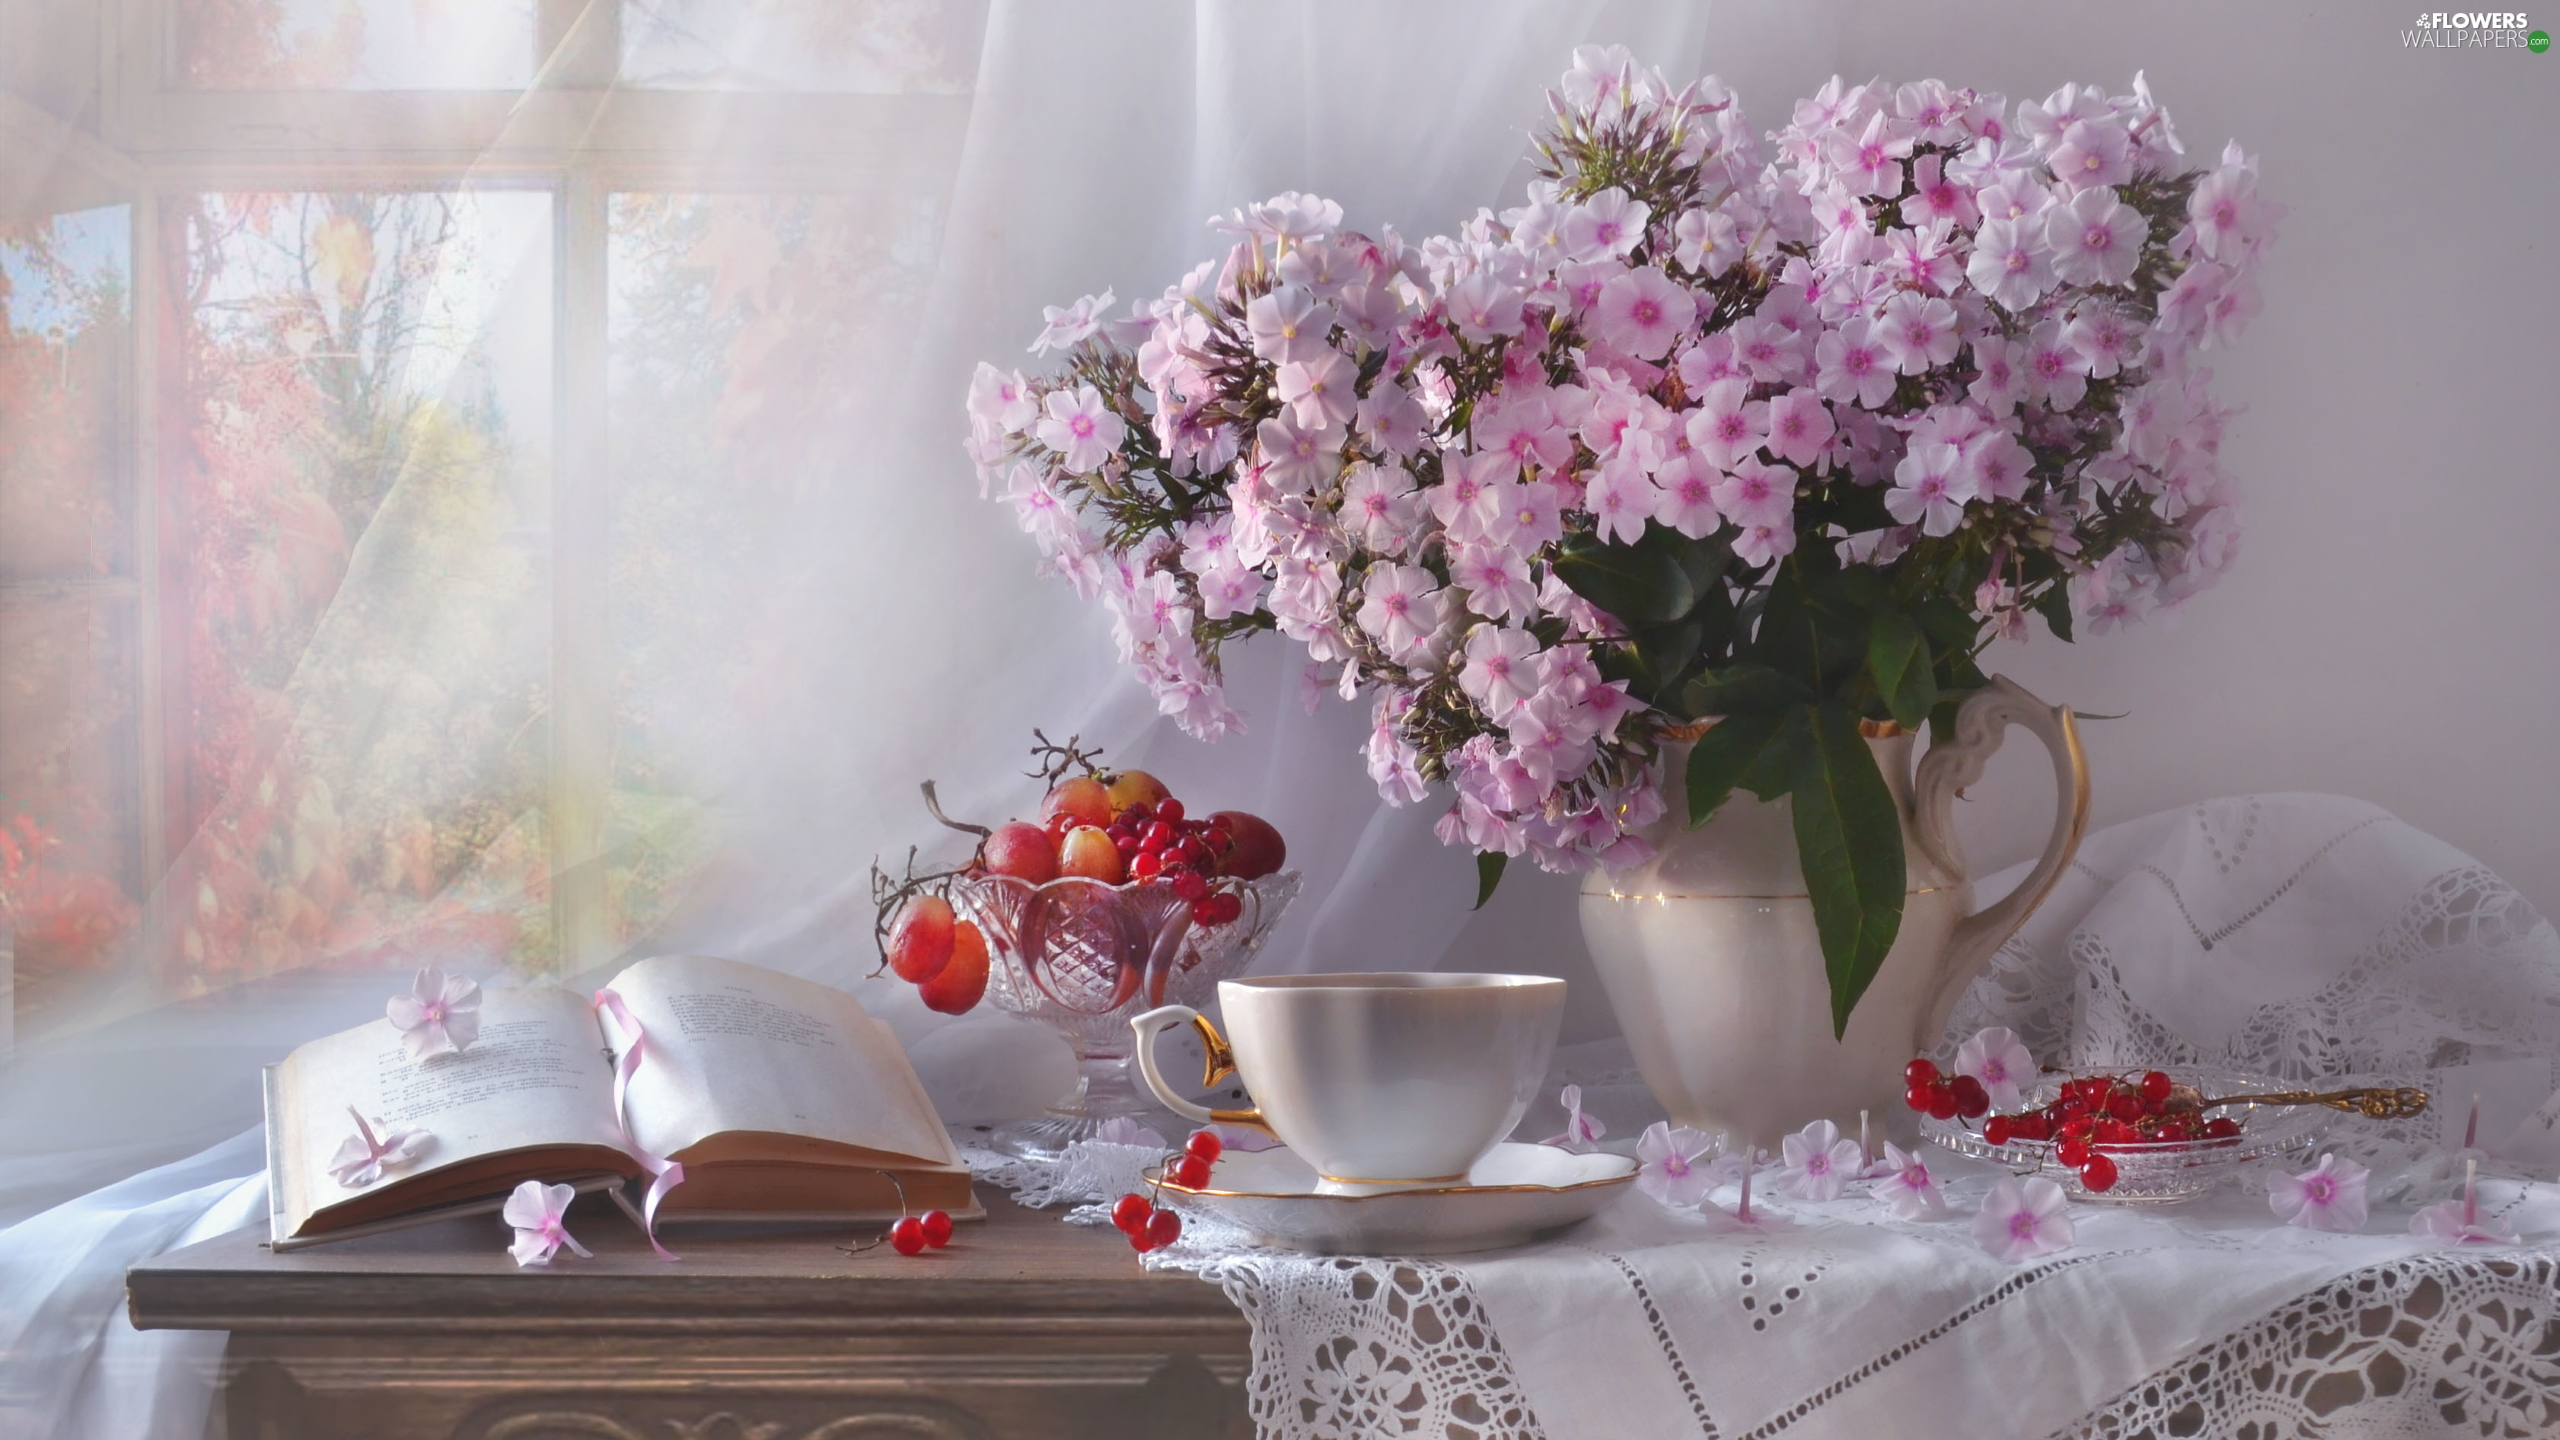 Grapes, bouquet, jug, tablecloth, cup, Flowers, phlox, composition, Red Currant, Book